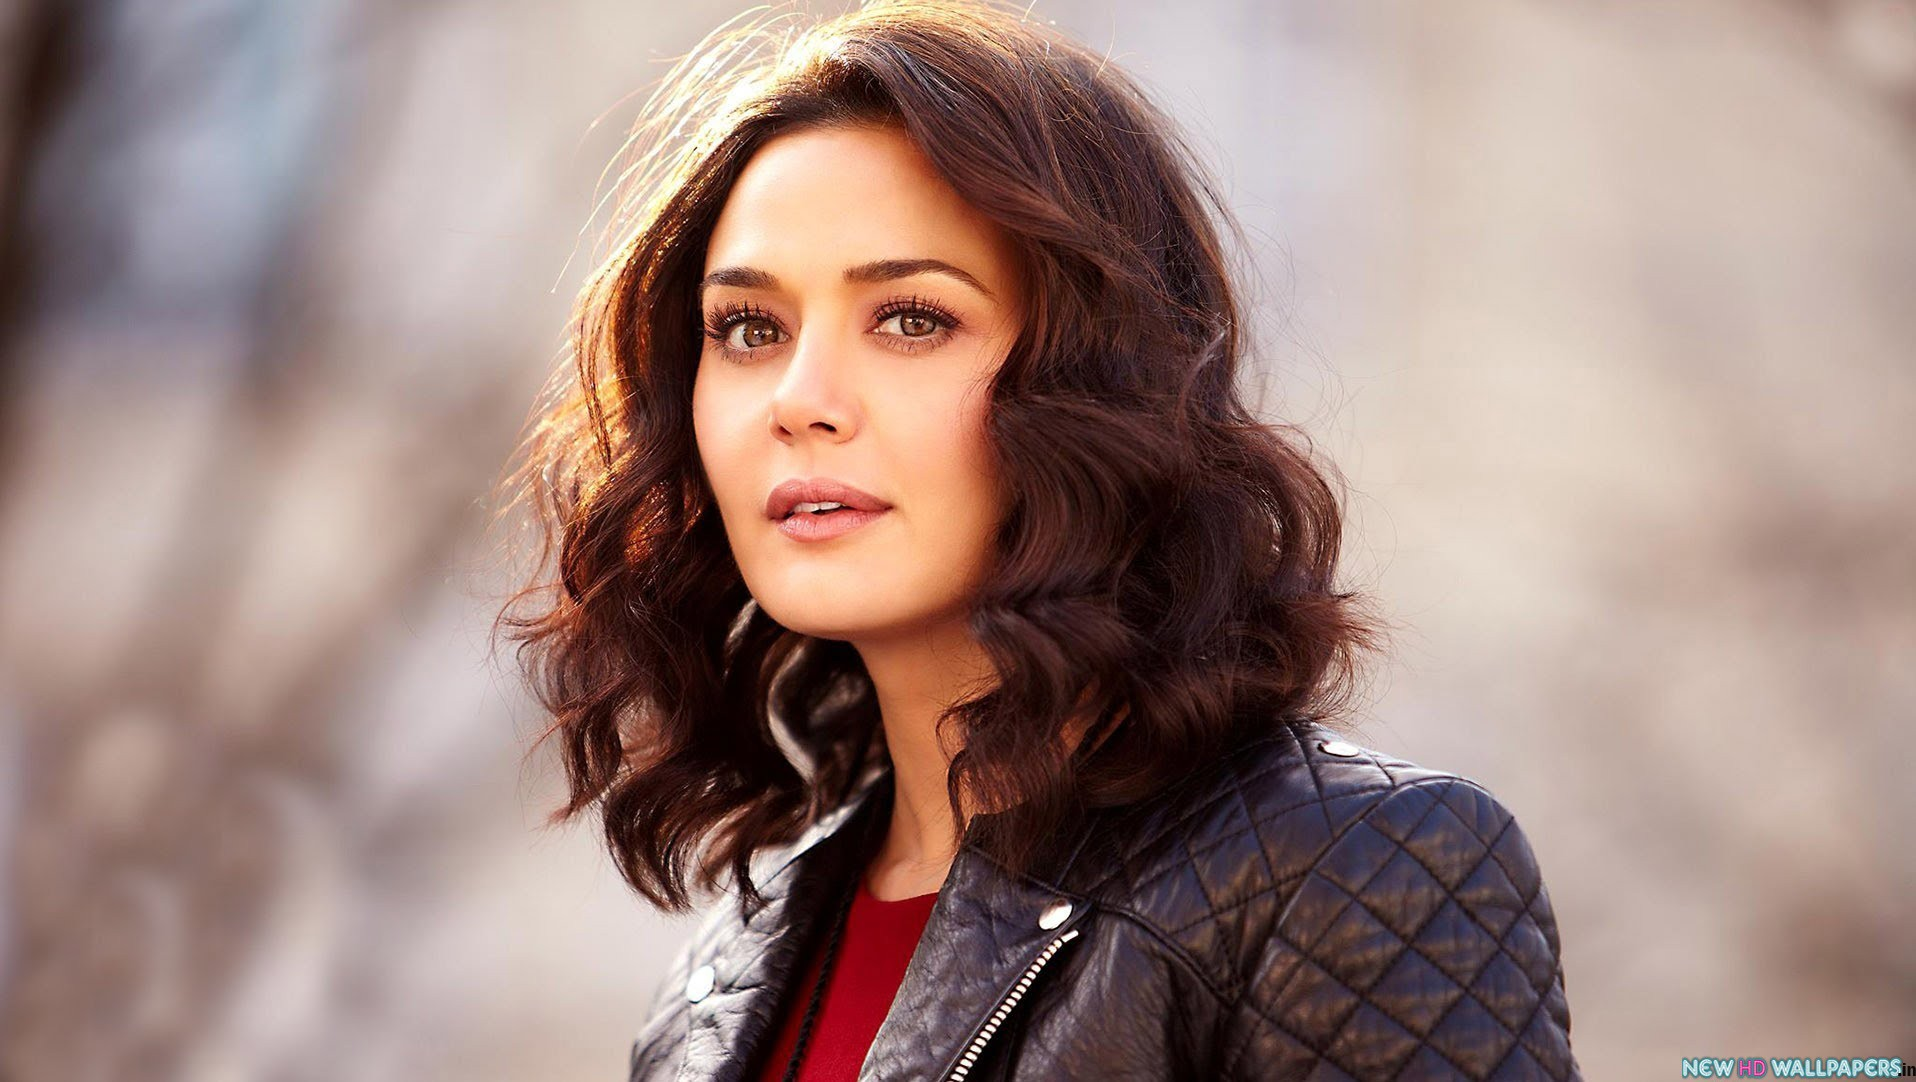 Preity Zinta Full Hd Wallpapers: Preity Zinta Wallpapers High Resolution And Quality Download